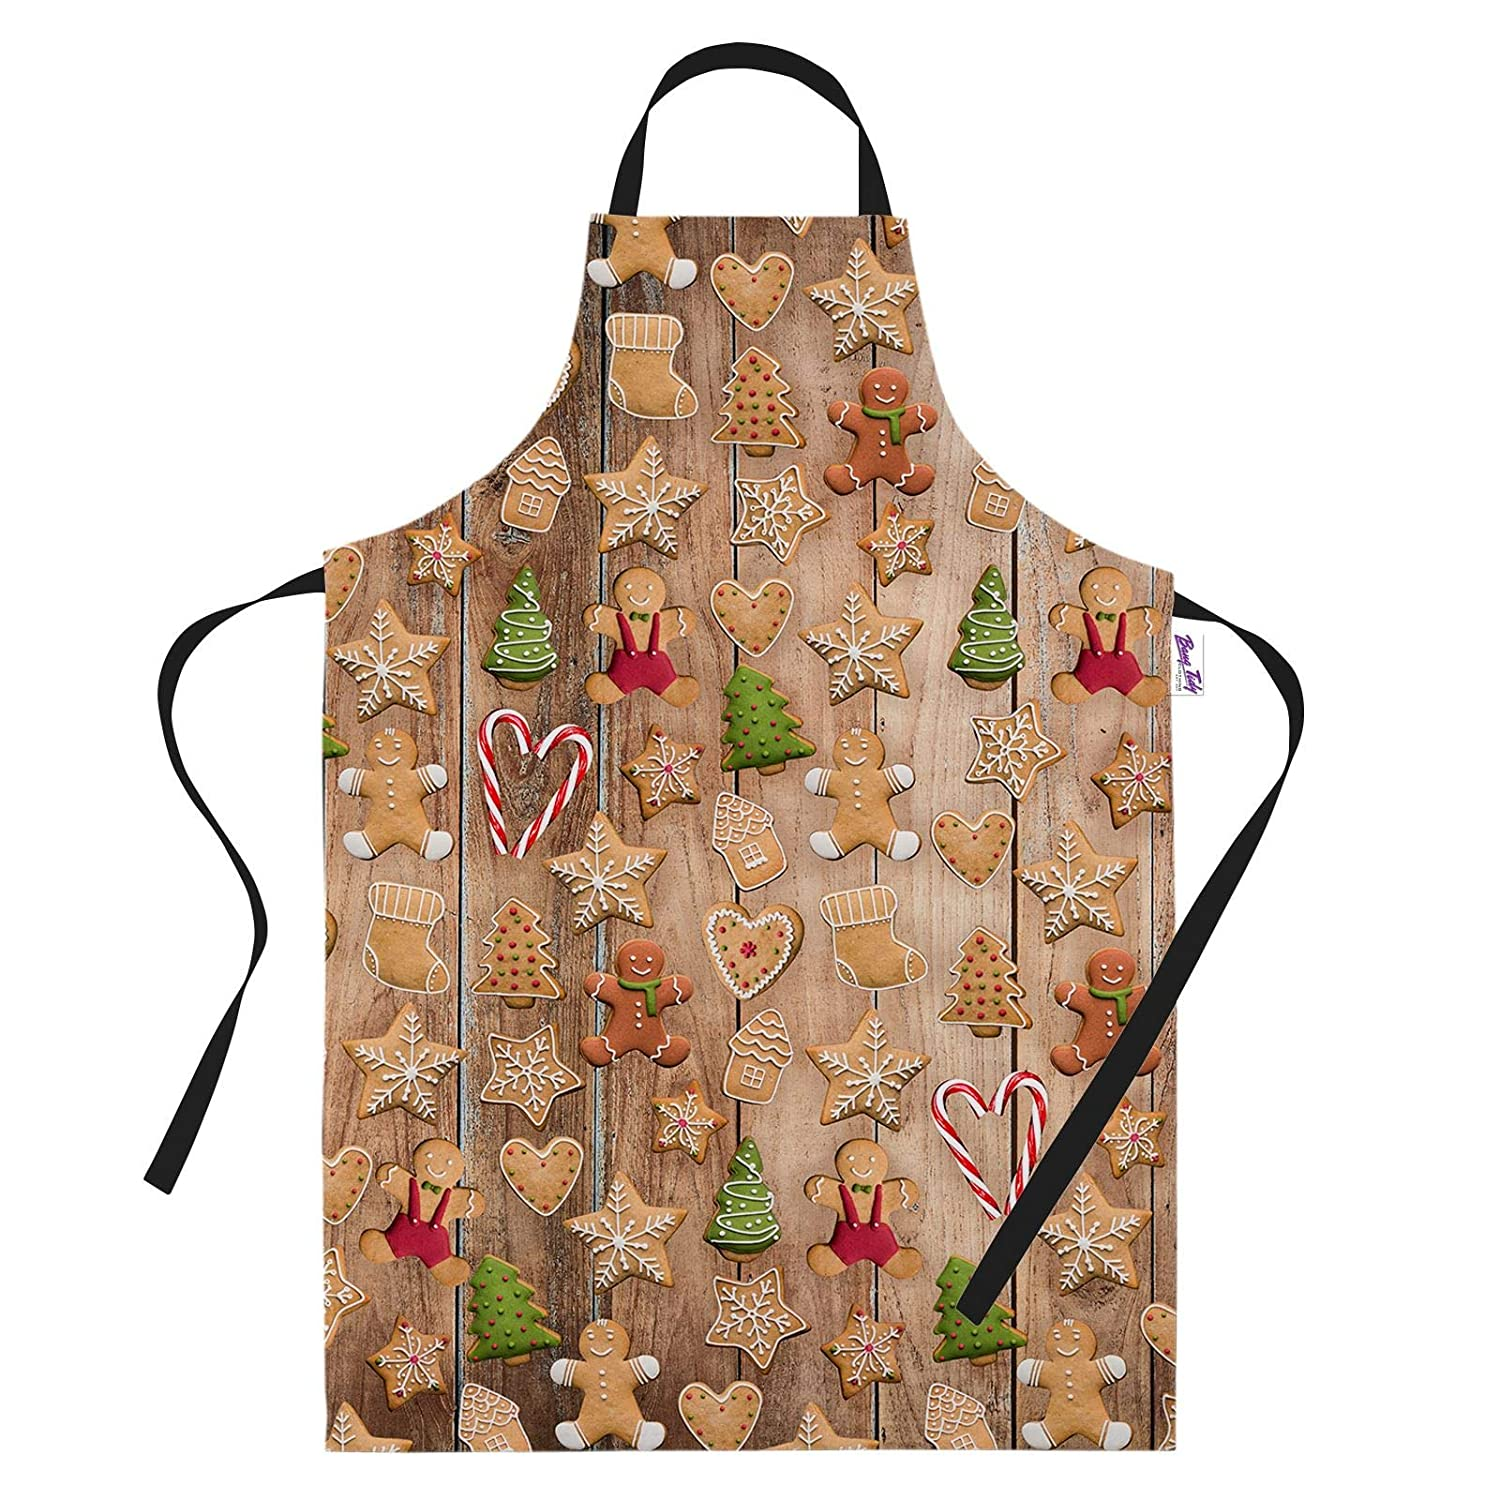 Bang Tidy Clothing Funny Christmas Cooking Apron for Women & Men Novelty Xmas Christmas Treats